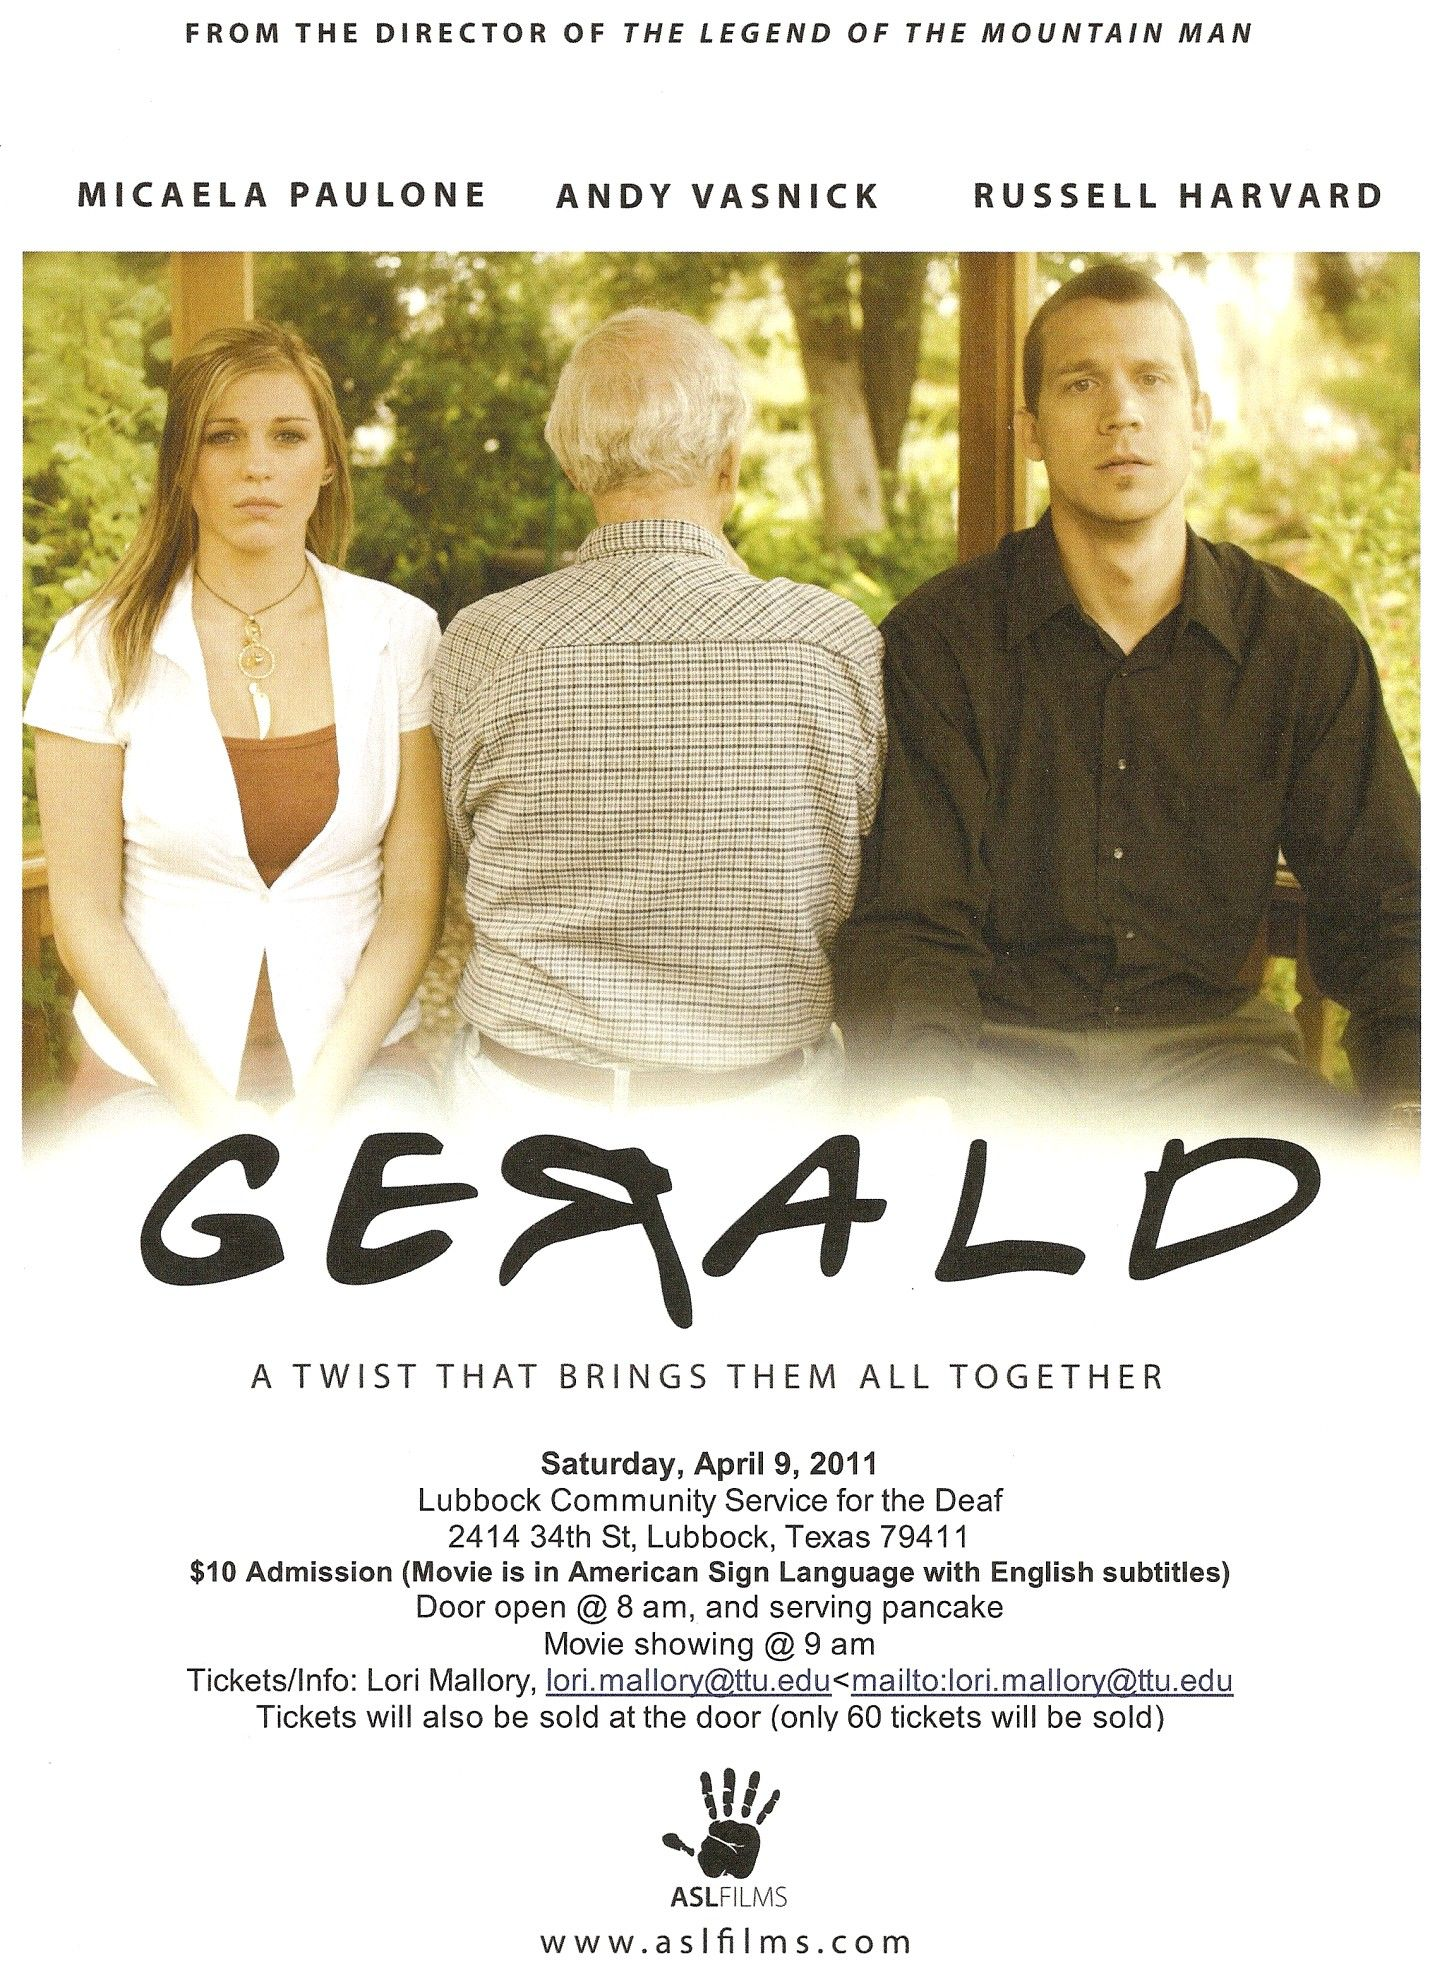 Gerald. ASL films. This was a good movie. I love Russell